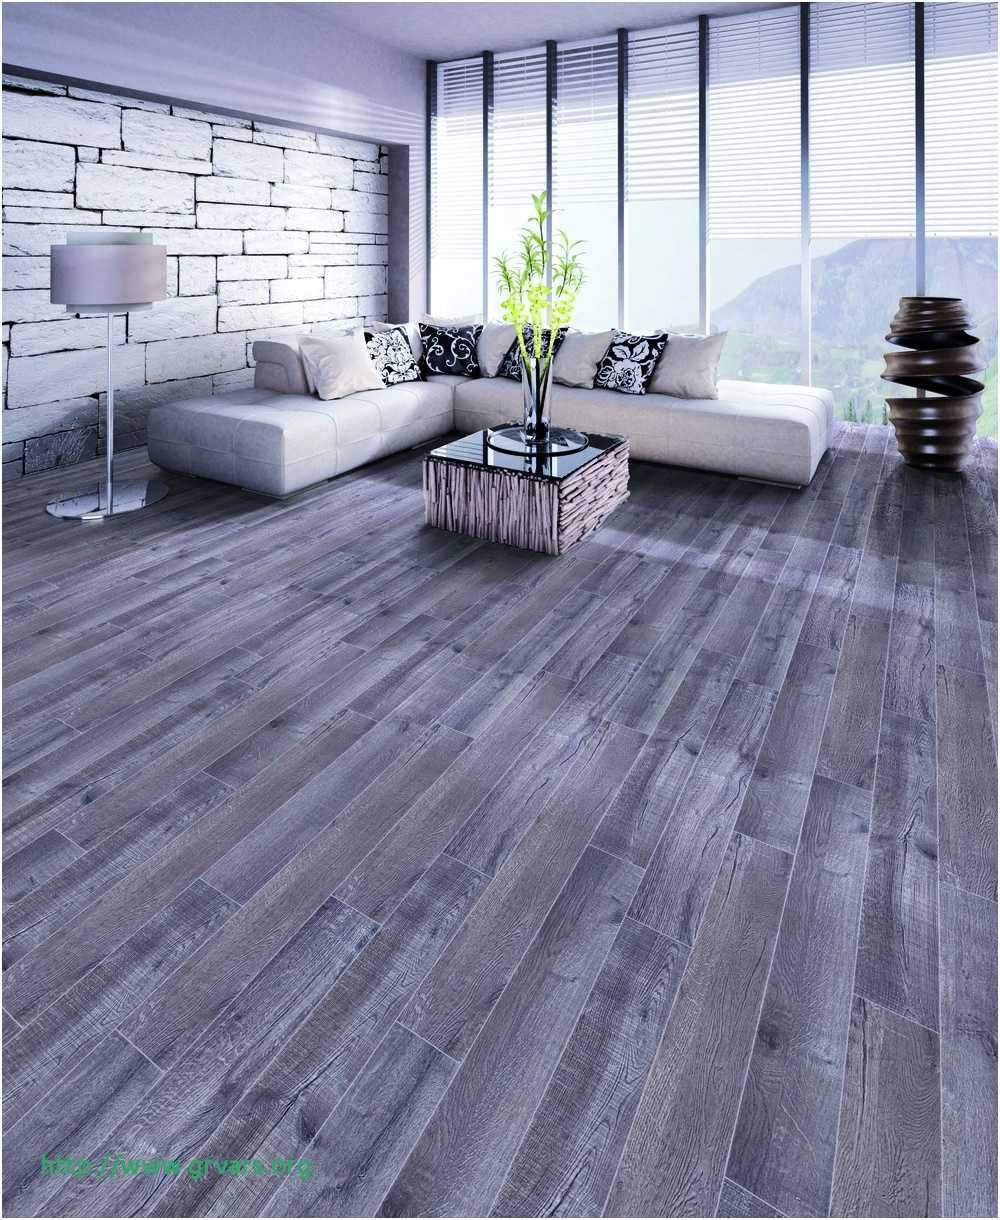 hardwood floor cleaning tulsa of 24 charmant quiet flooring options ideas blog regarding tulsa on kitchens pinterest quiet flooring options inspirant black and white laminate flooring lovely 4 latest hardwood flooring